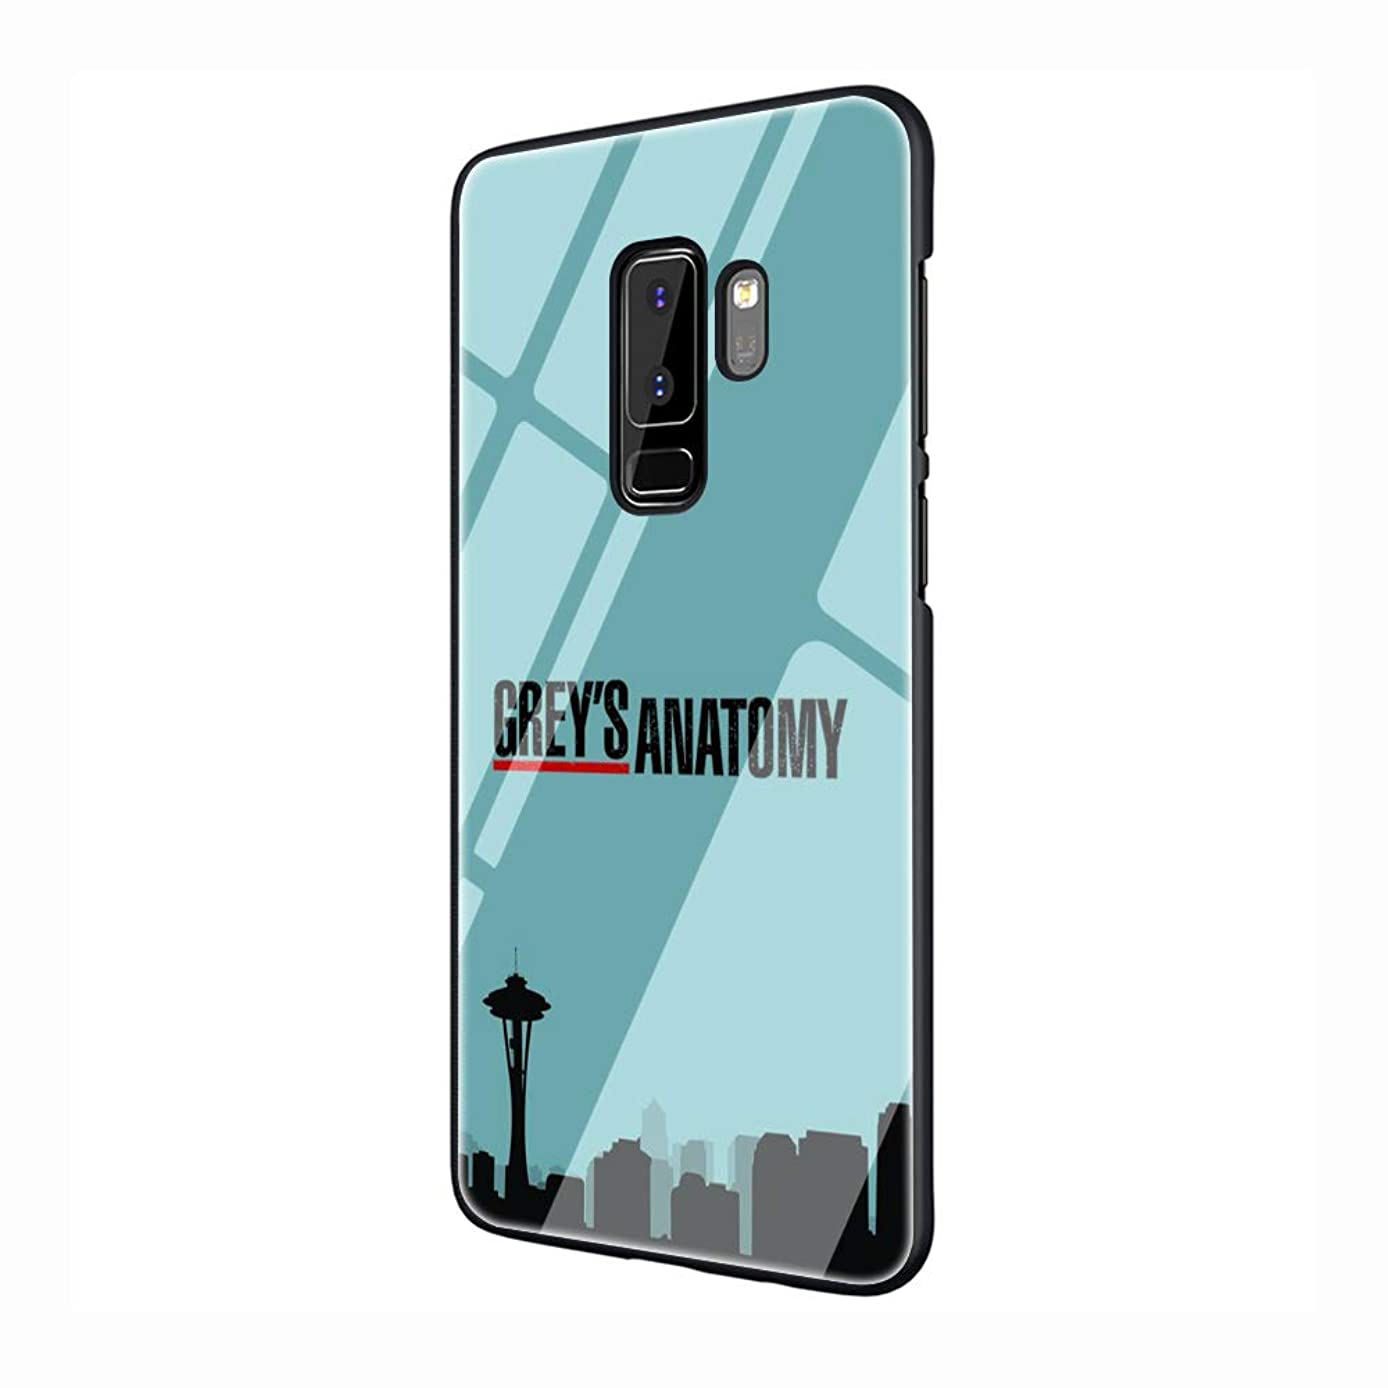 American TV Greys Anatomy Tempered Glass TPU Black Cover Case for Samsung Galaxy S7 Edge S8 S9 Plus S10 Note 8 9 (G10,for Samsung S10)